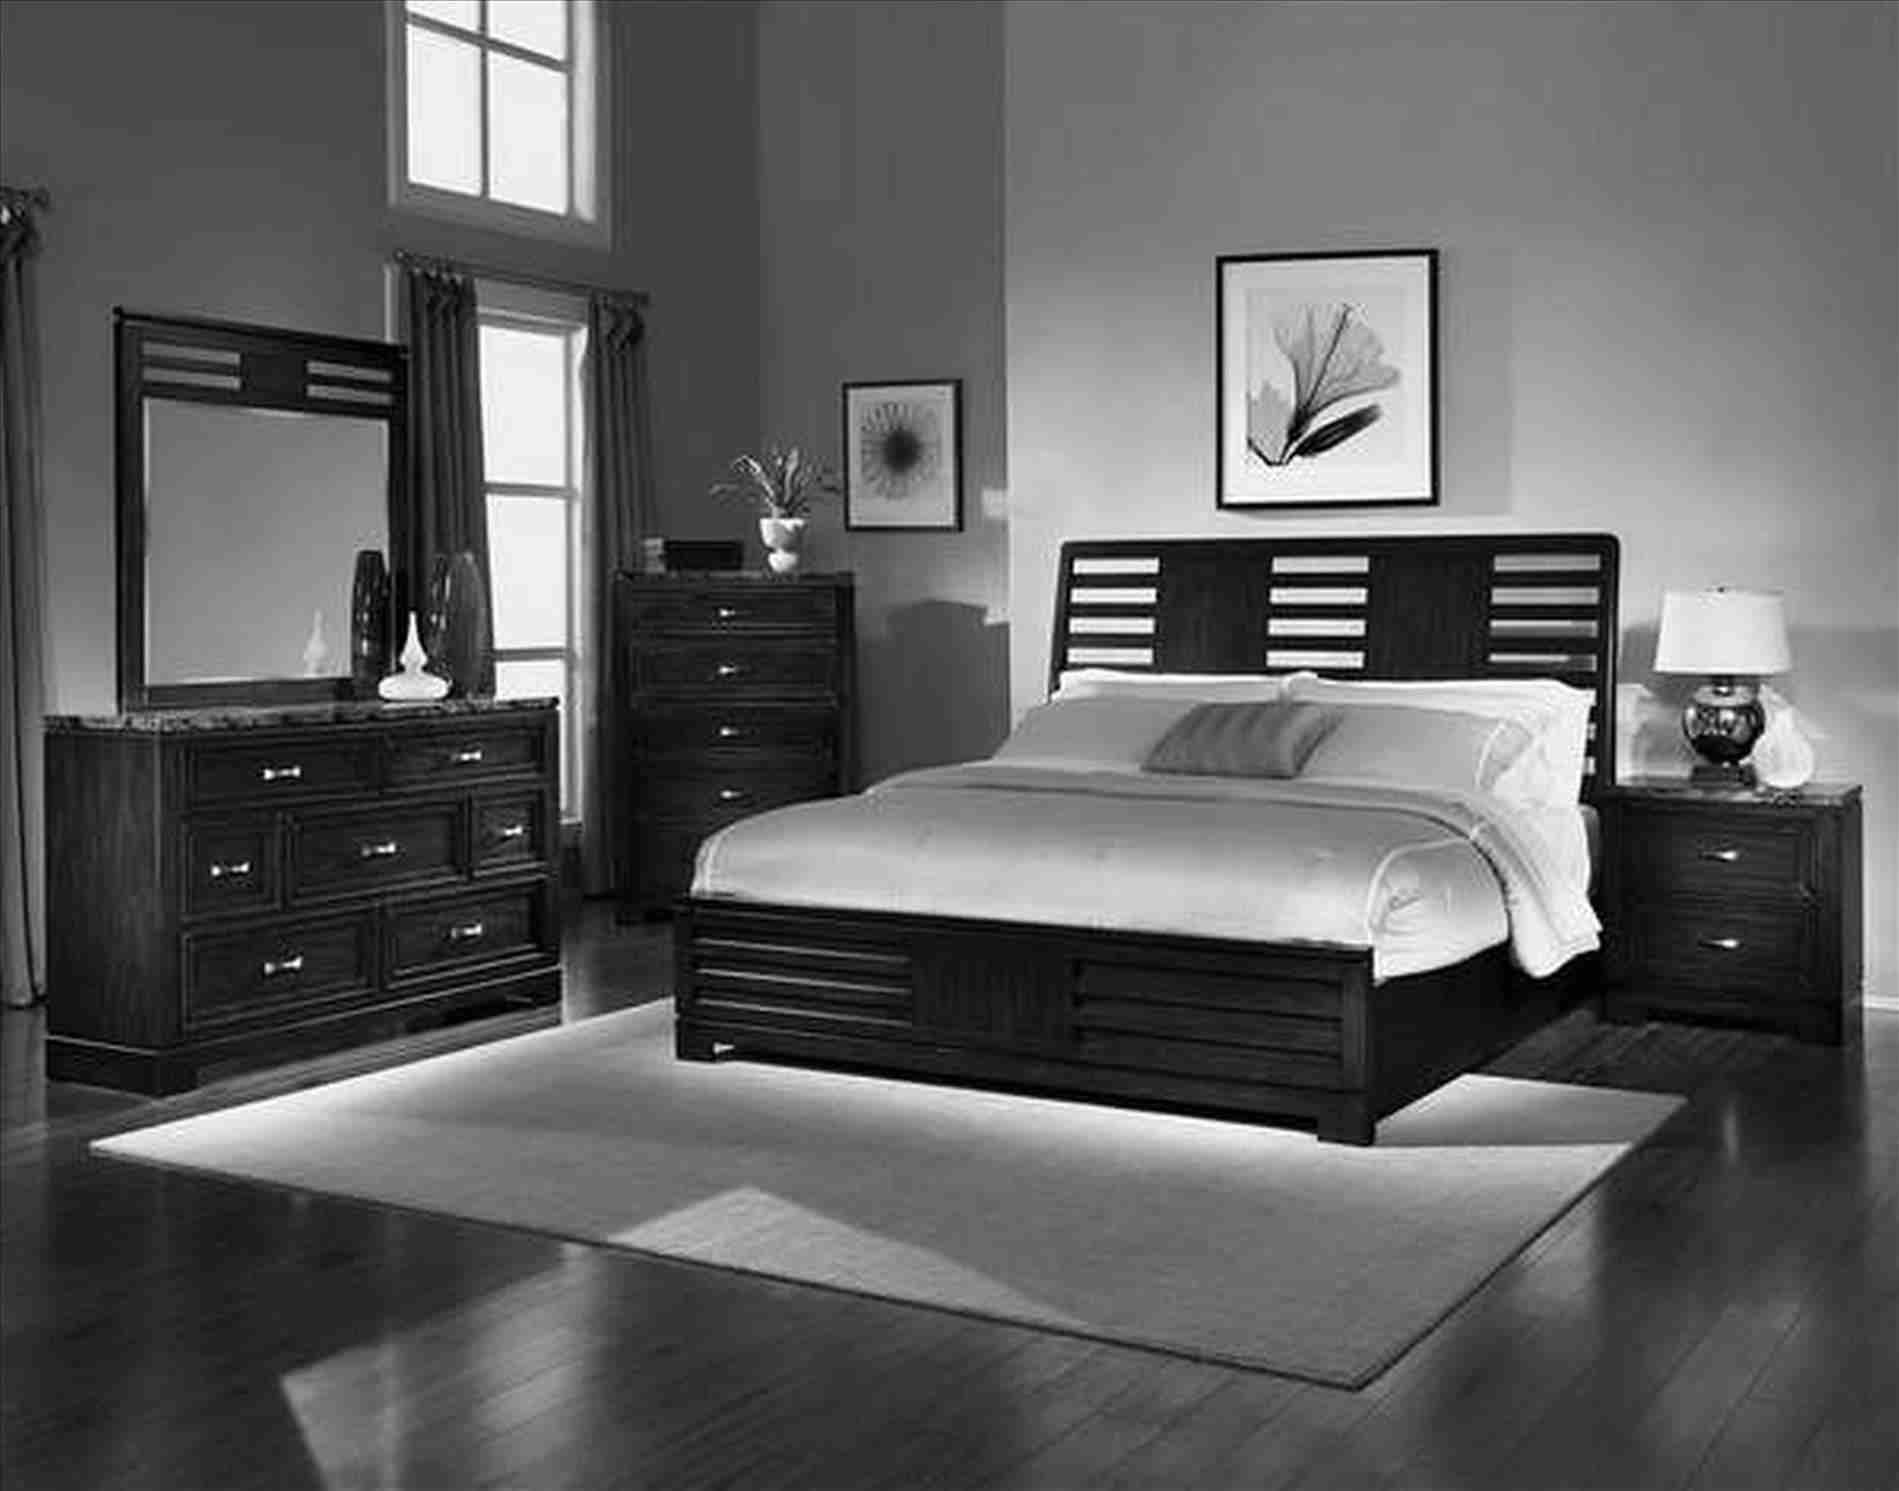 Black Furniture Bedroom Ideas Black Bedroom Furniture Bedroom Paint Colors Master Bedroom Furniture